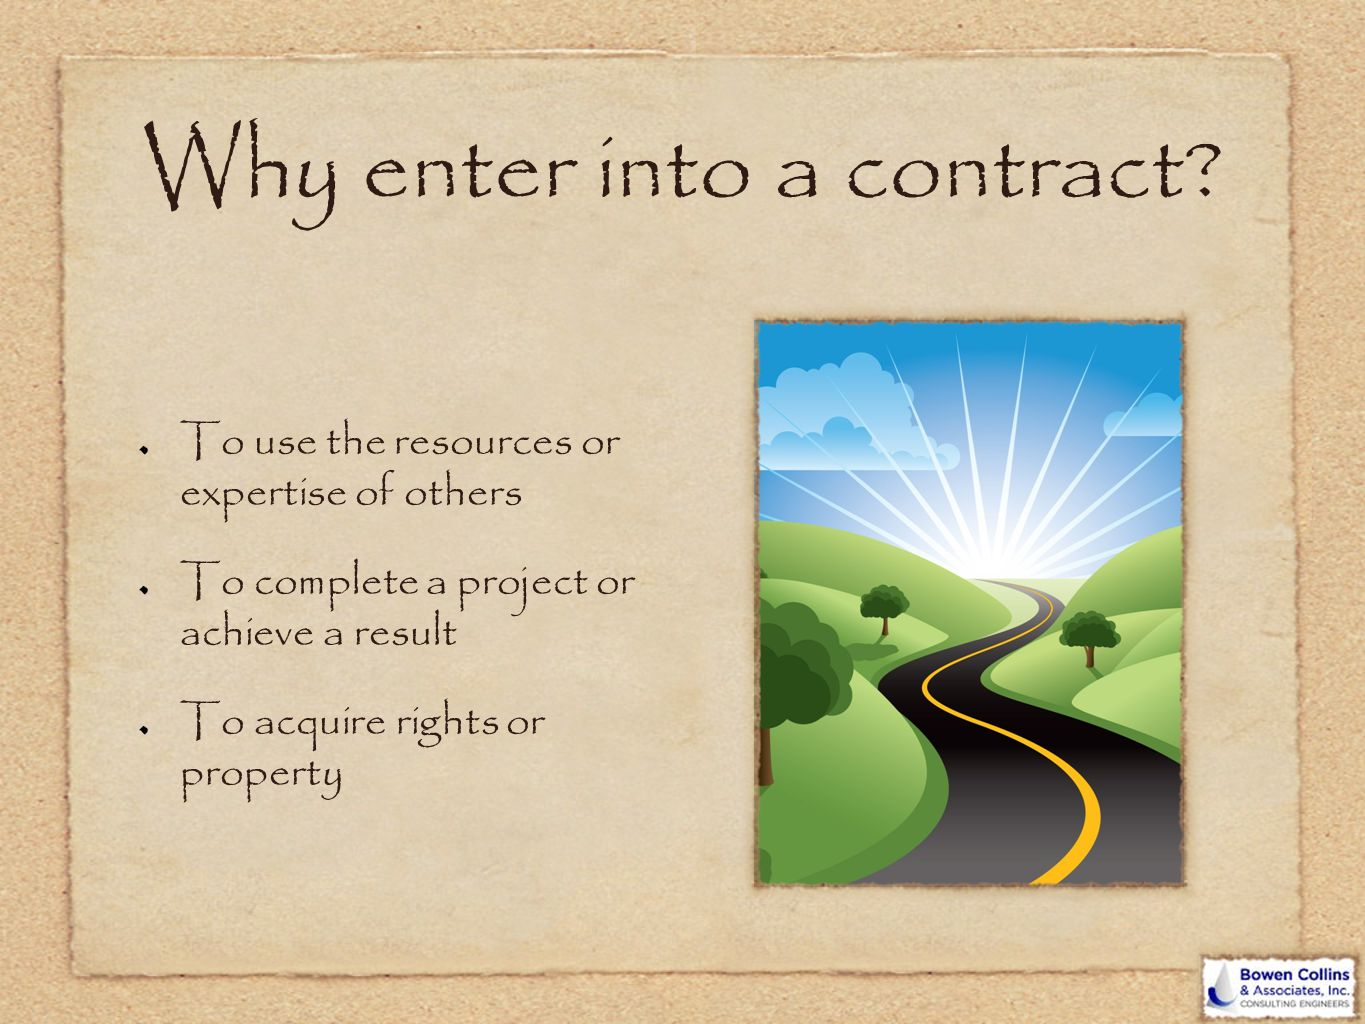 Why enter into a contract